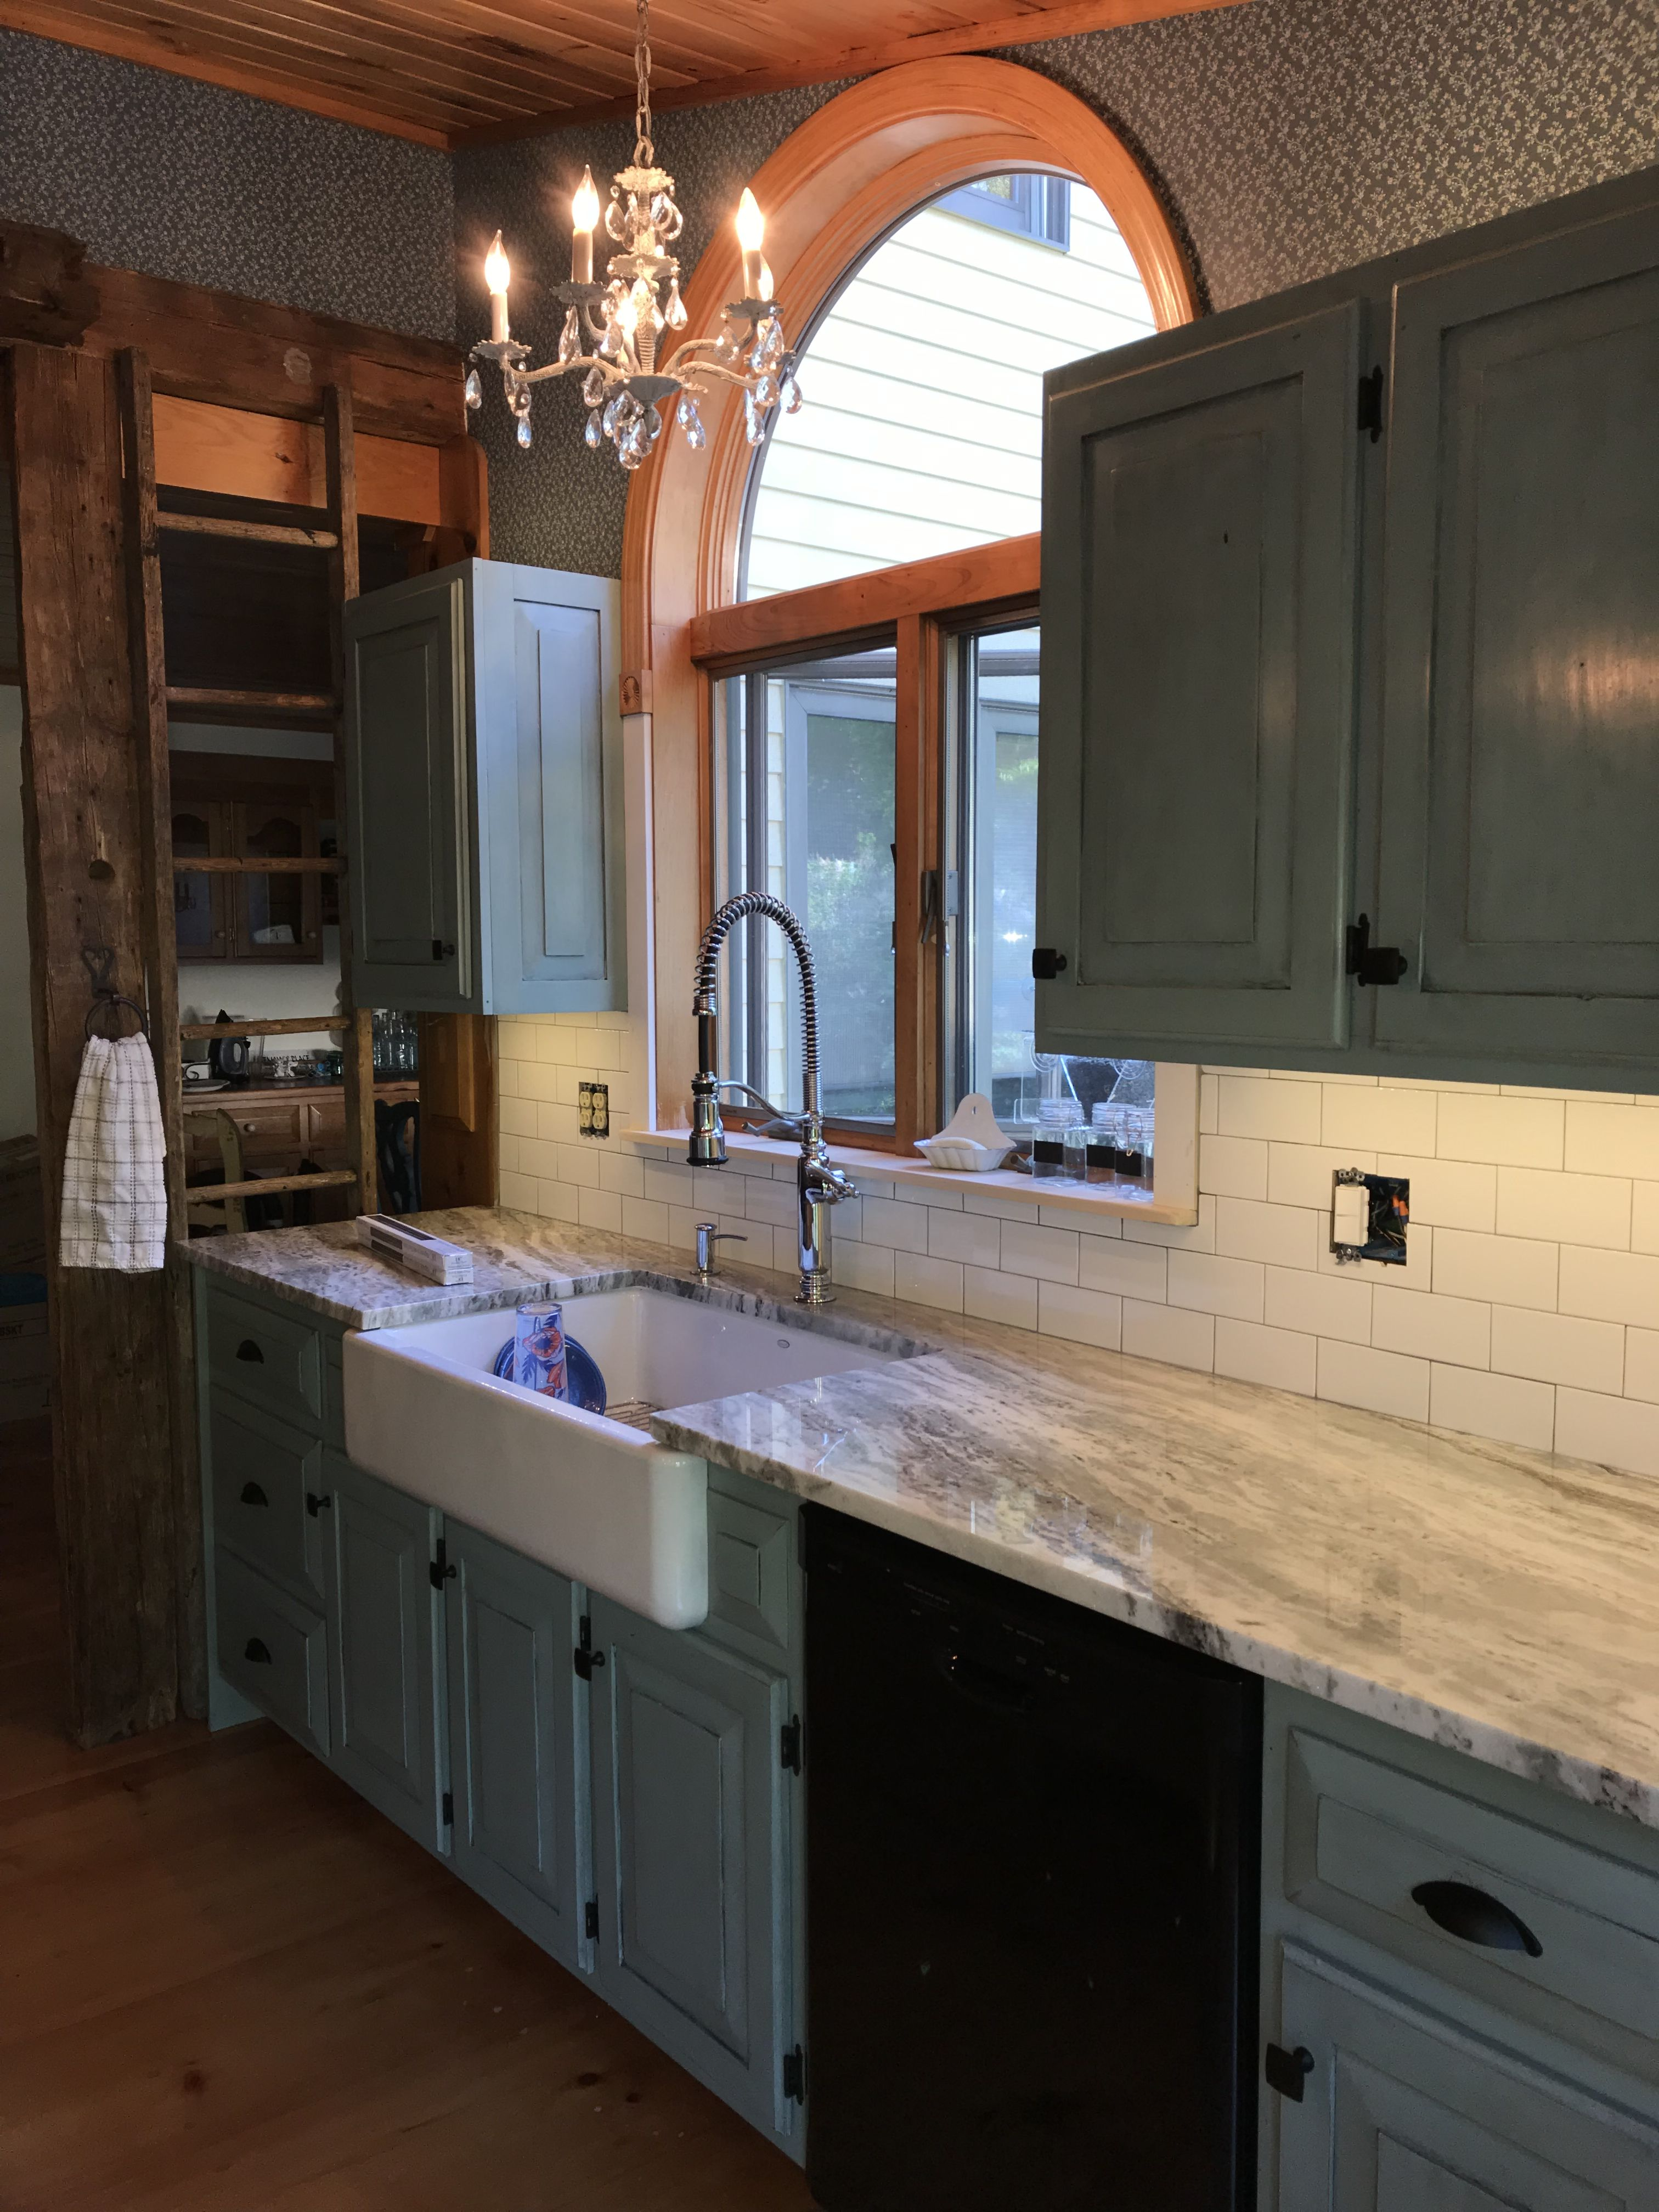 Chalk Painted Kitchen Cabinets Duck Egg Blue With Black Wax